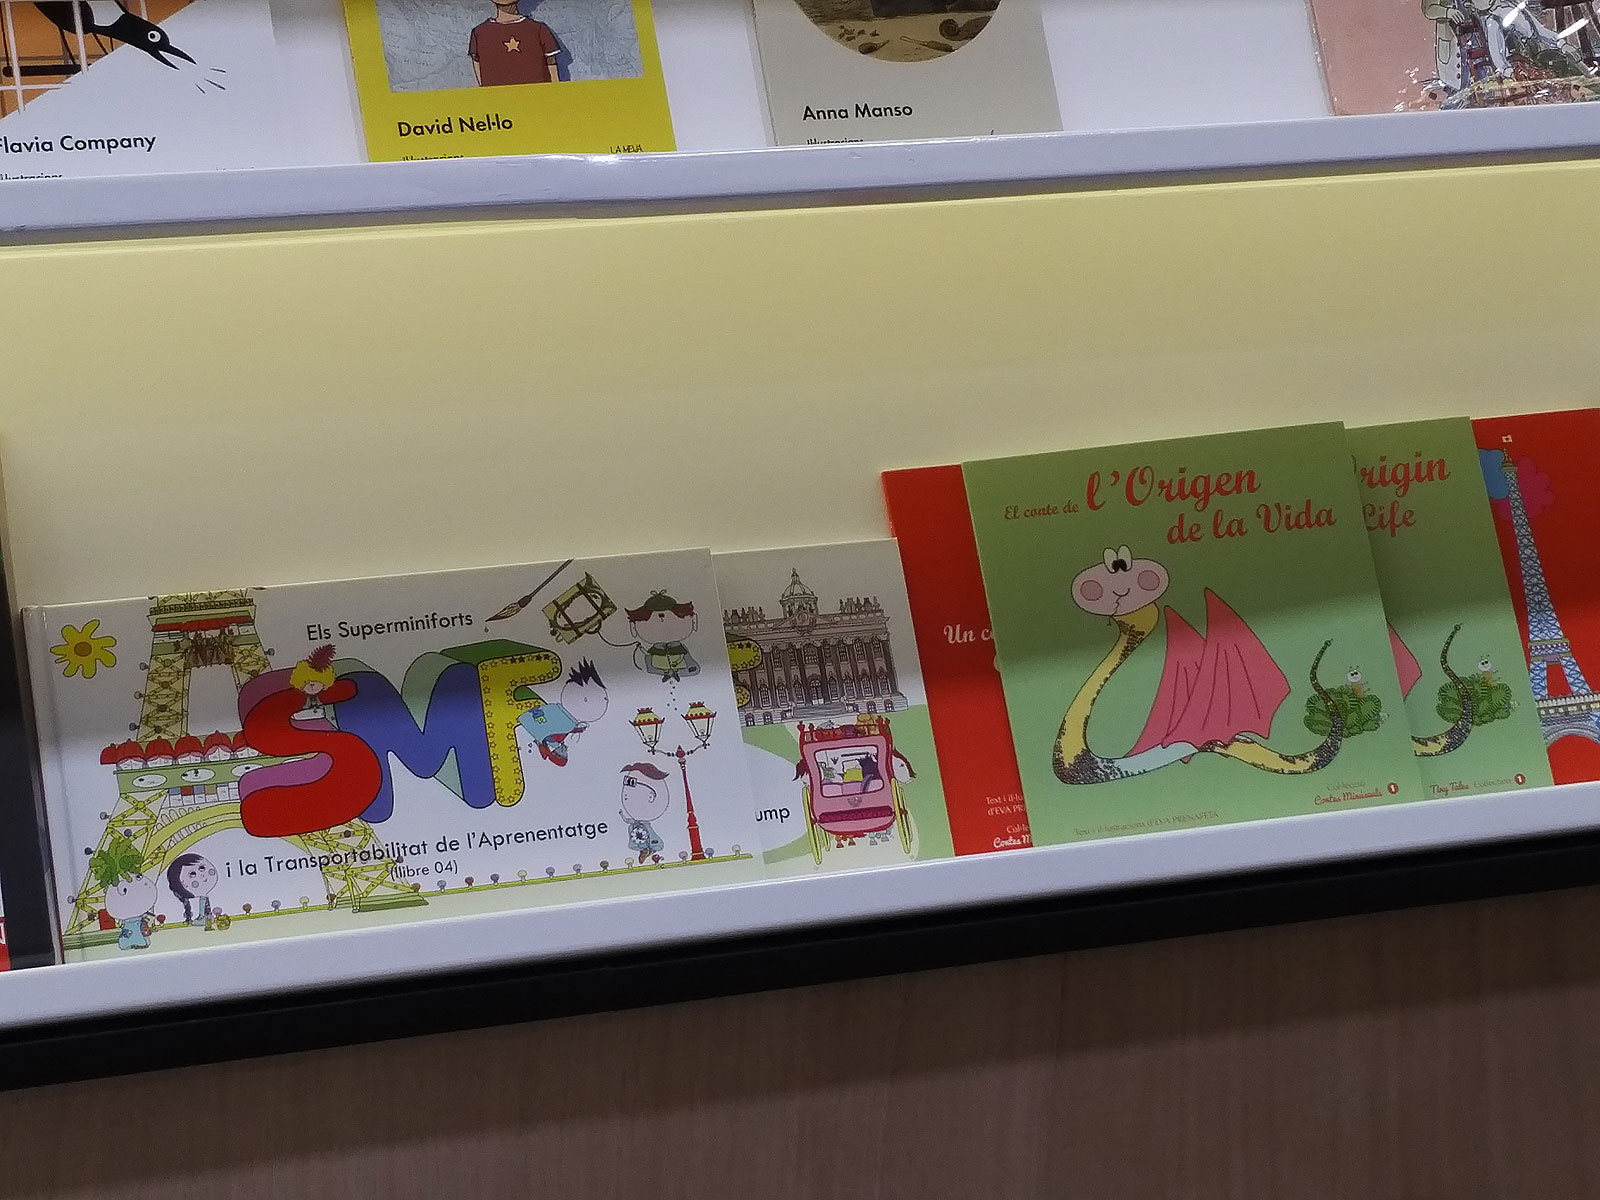 Bologna Children's Book Fair - 1-4 Abril 2019 (foto 2)